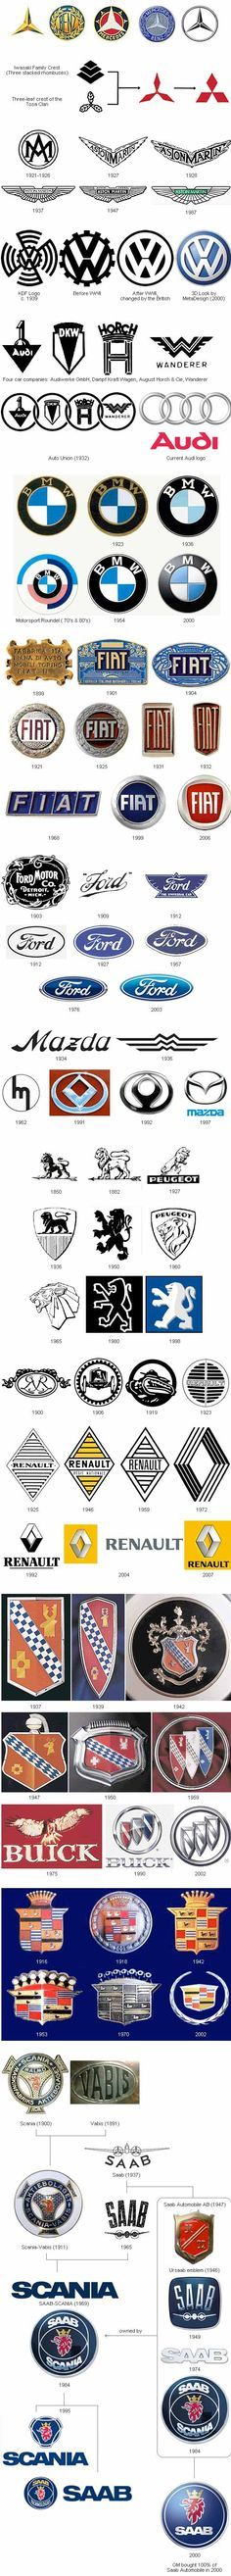 Evolution of auto logos Car Badges, Car Logos, Auto Logos, Diavel Ducati, Evolution, Car Brands, Car Manufacturers, Amazing Cars, Car Car